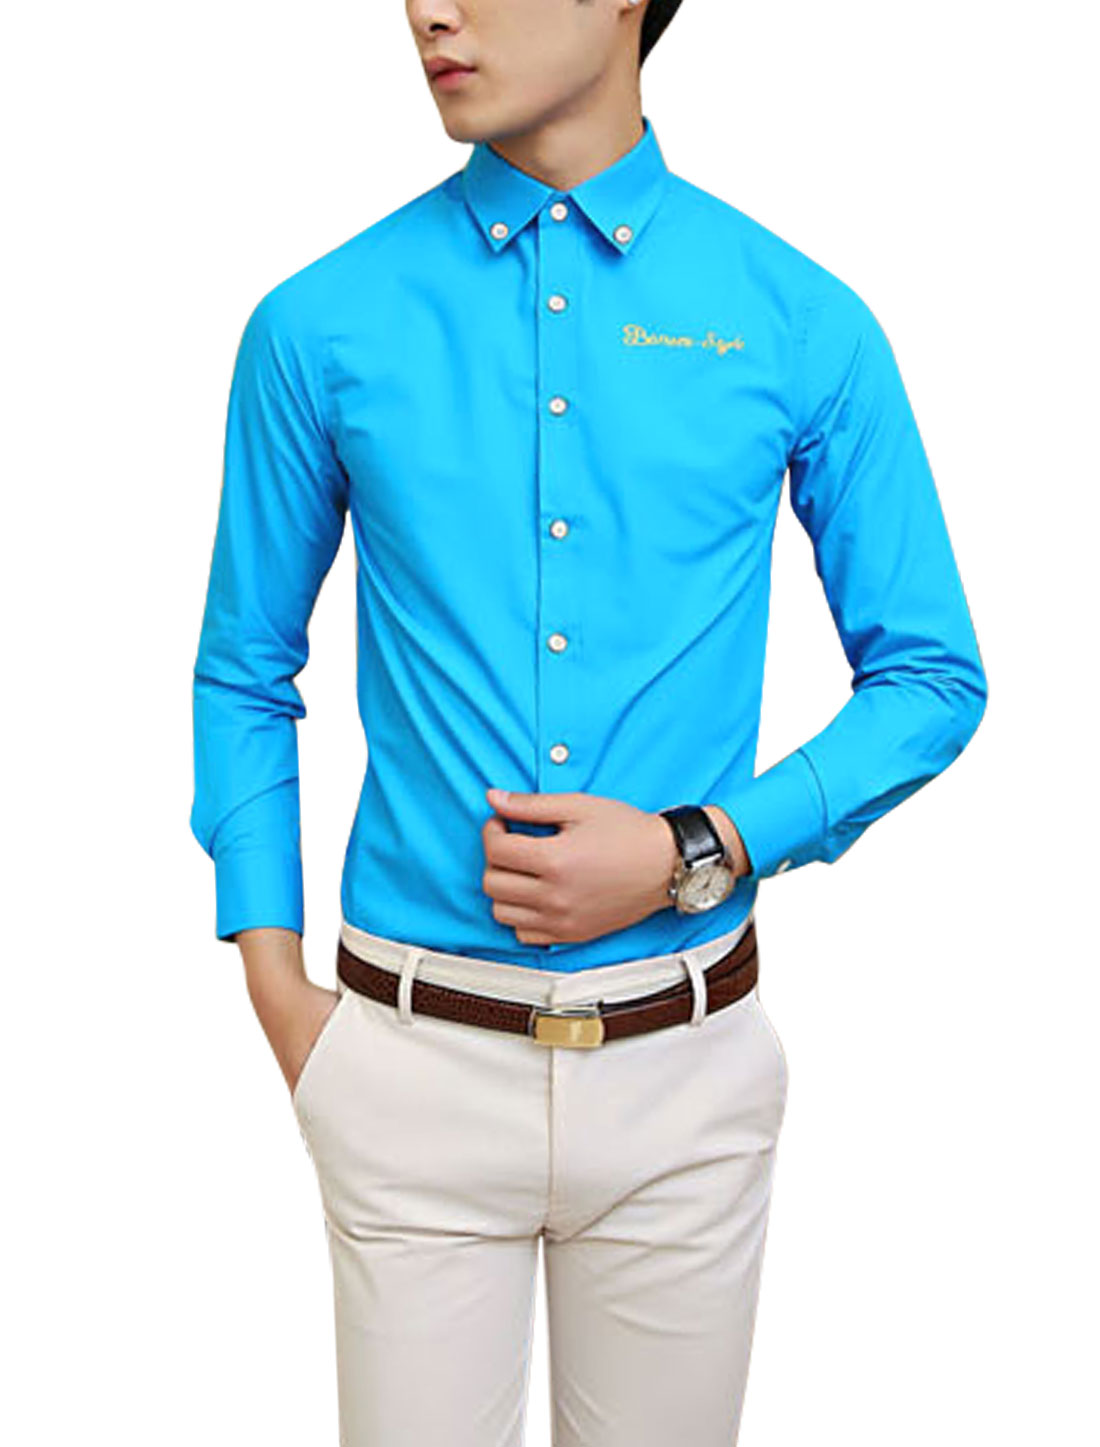 Man Full Sleeves Single Breasted Casual Peacock Blue Shirt M